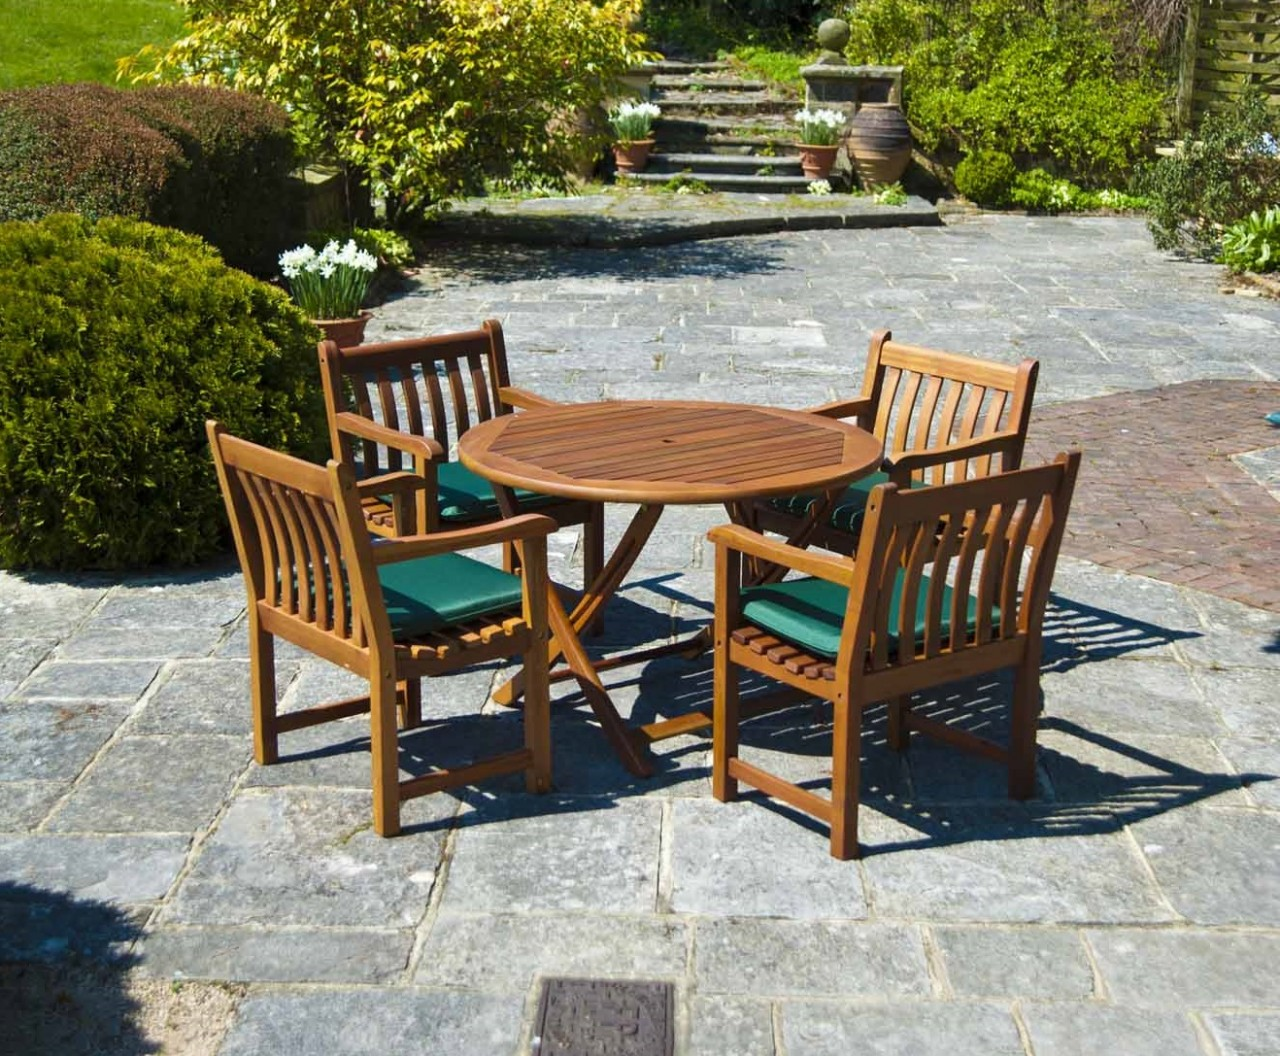 https://www.firstfurniture.co.uk/pub/media/catalog/product/a/l/alexander-rose-cornis-round-4-seater-broadfield-armchair-garden-set-pic36803.jpg